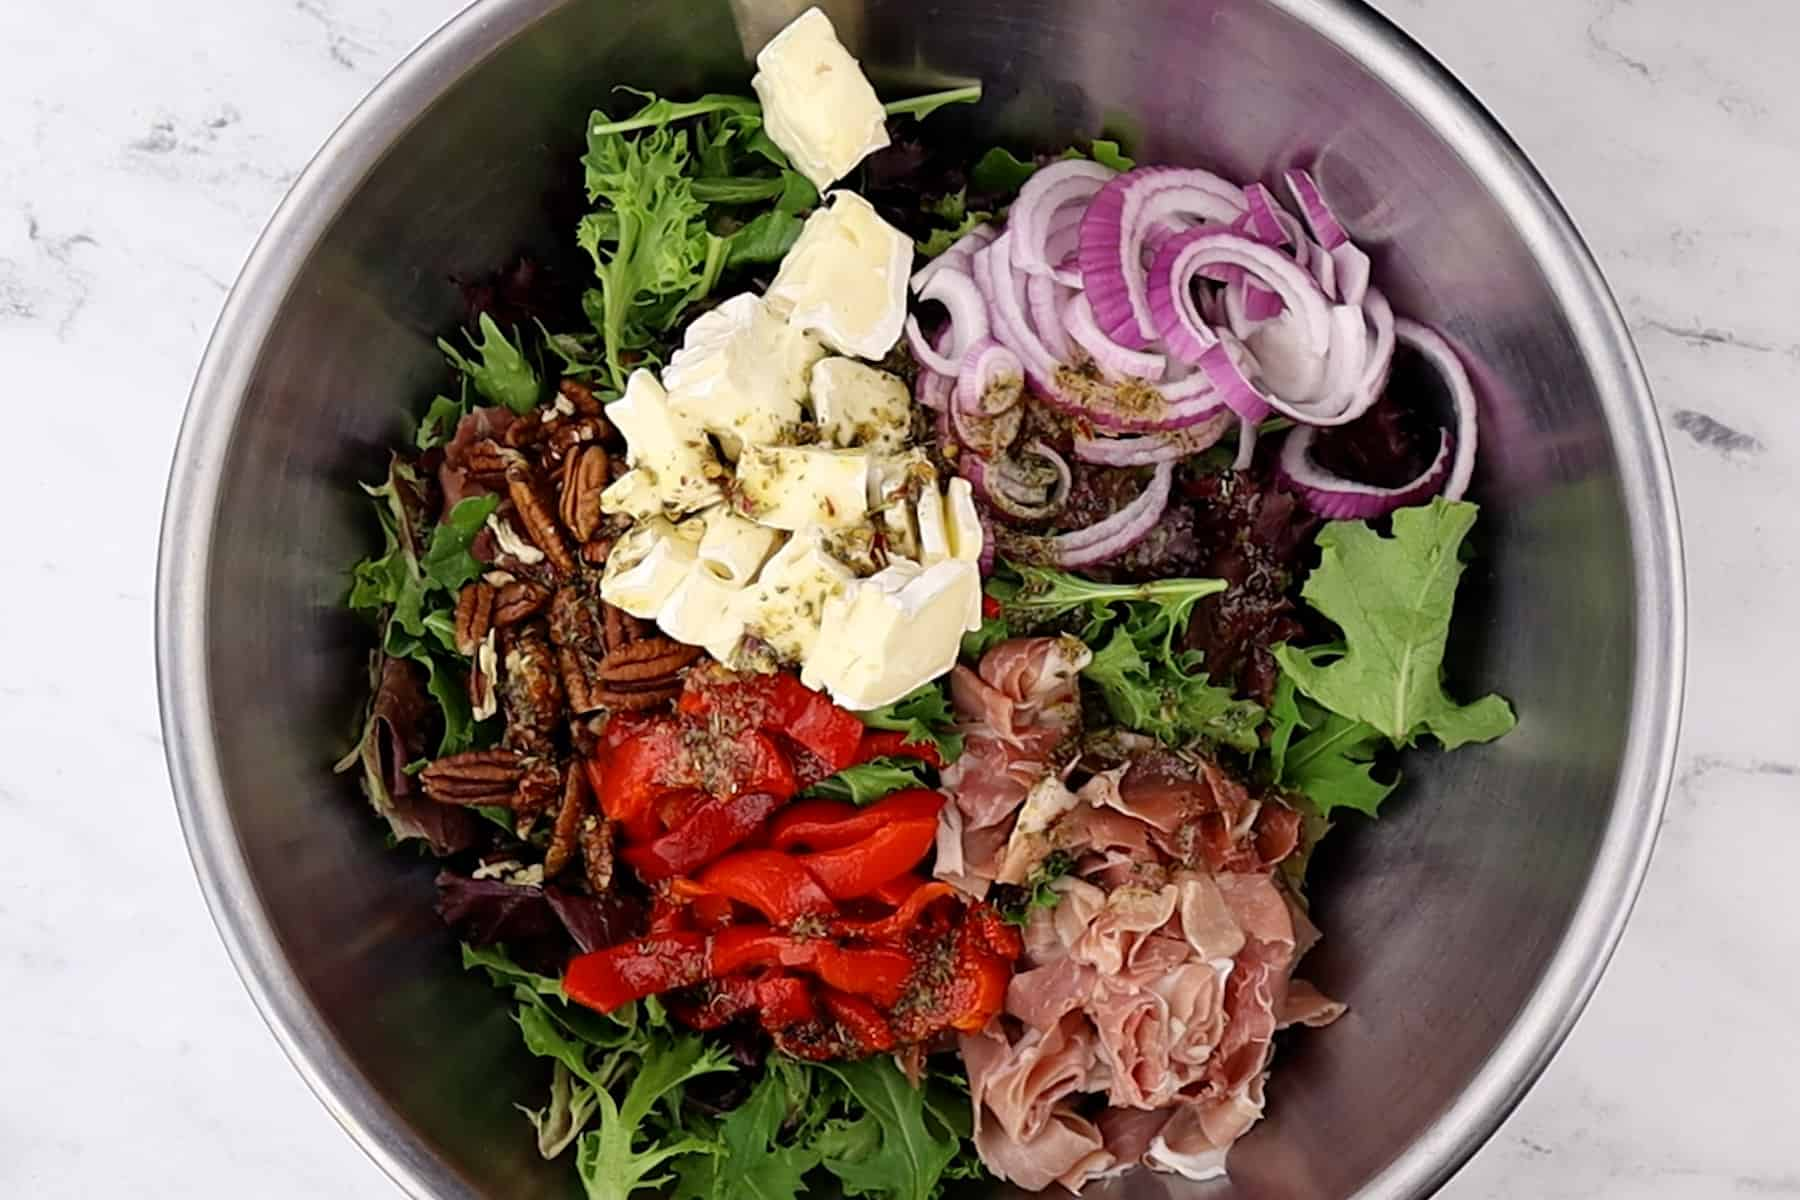 all ingredients for salad in large mixing bowl